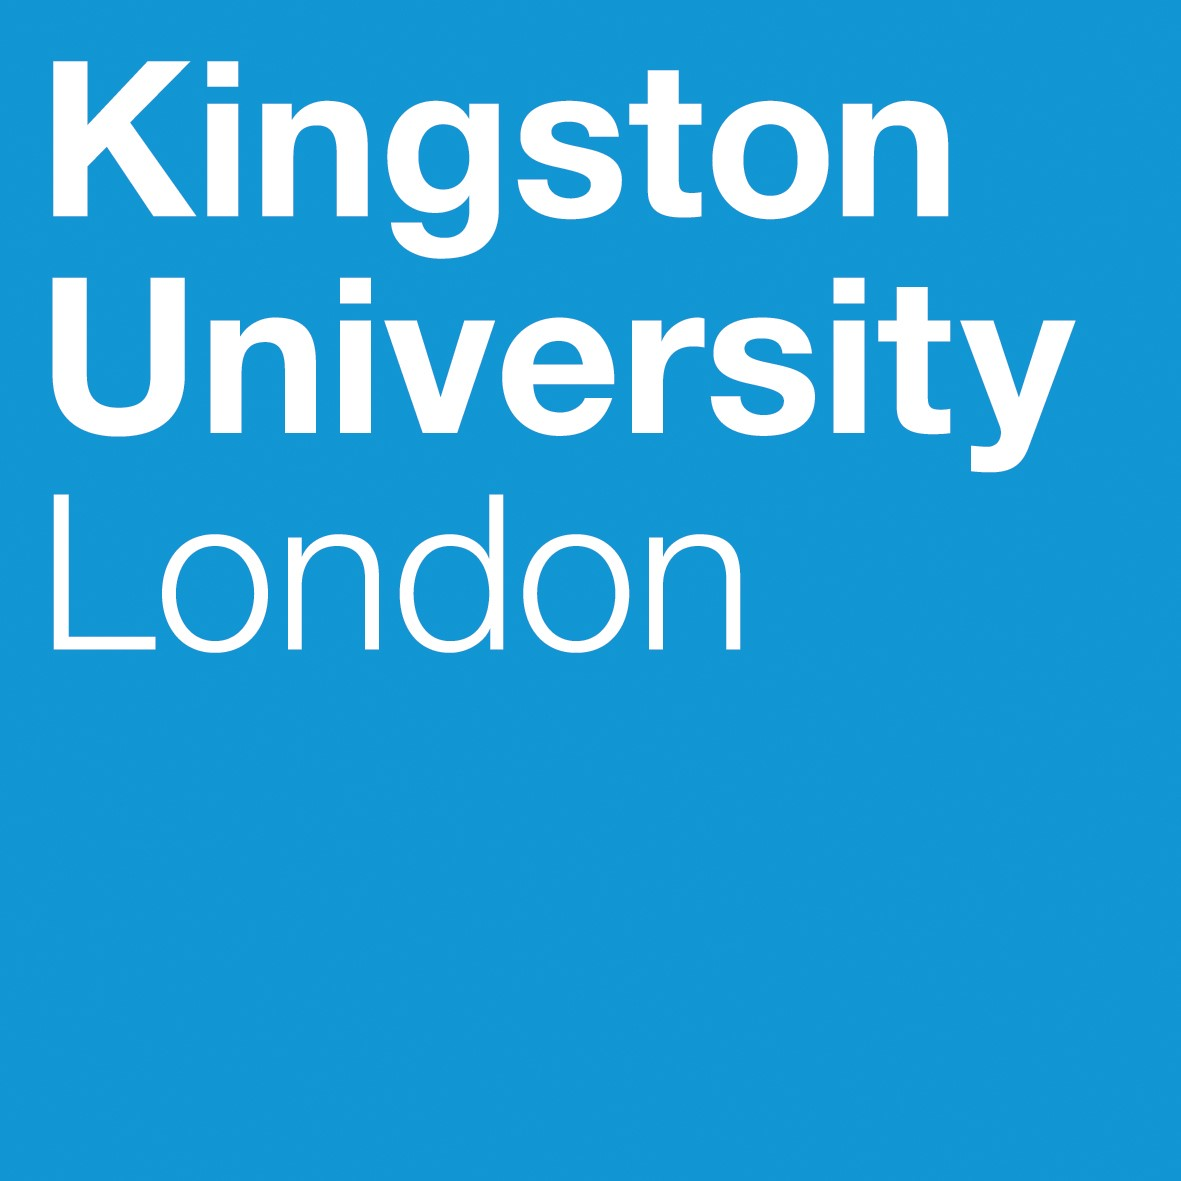 - The Kingston Economics BSc is a pluralist program which prepares students for policy roles, co-organized by the infamous Steve Keen.